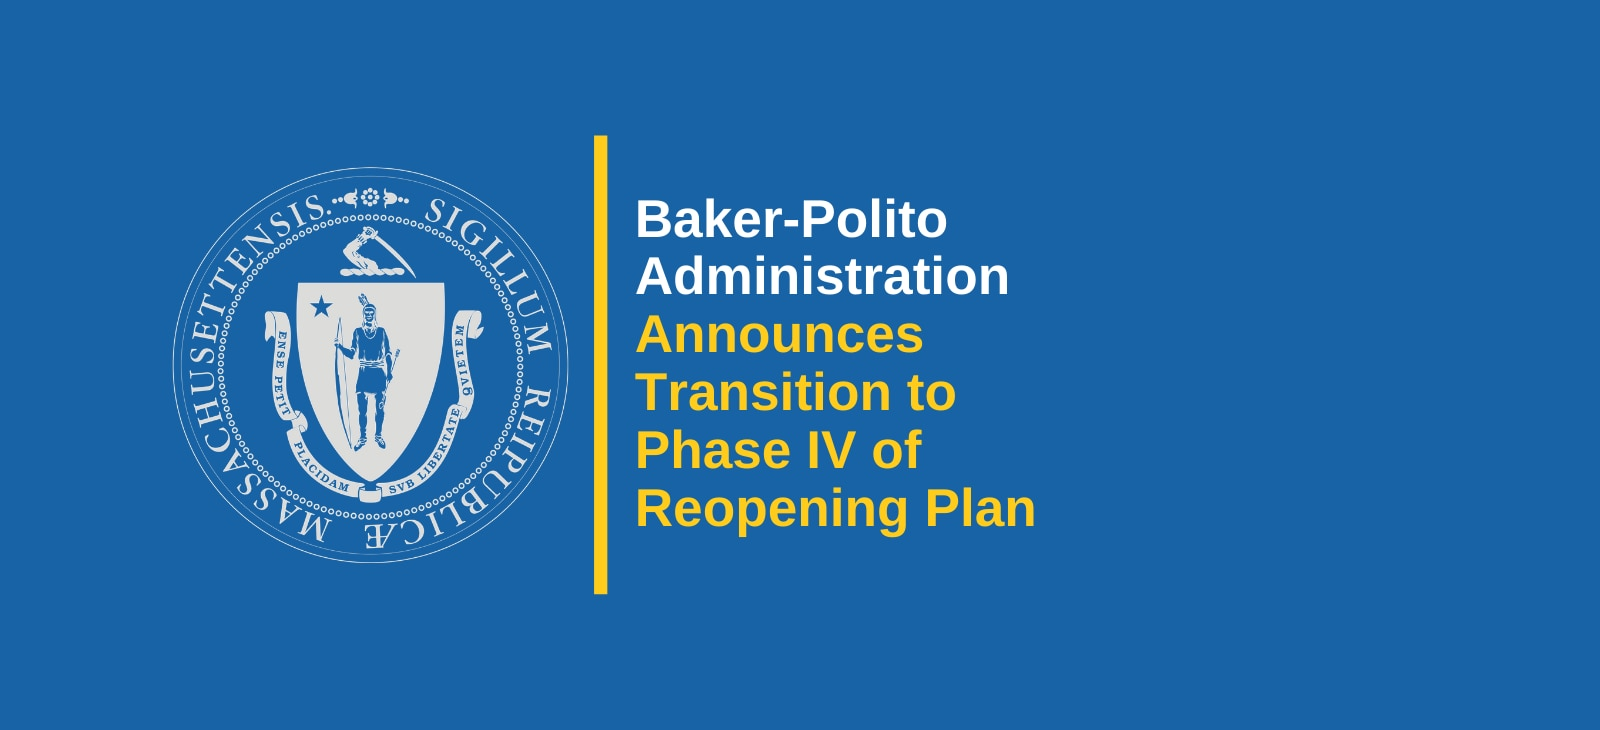 Baker-Polito Administration Announces Transition to Phase IV of Reopening Plan